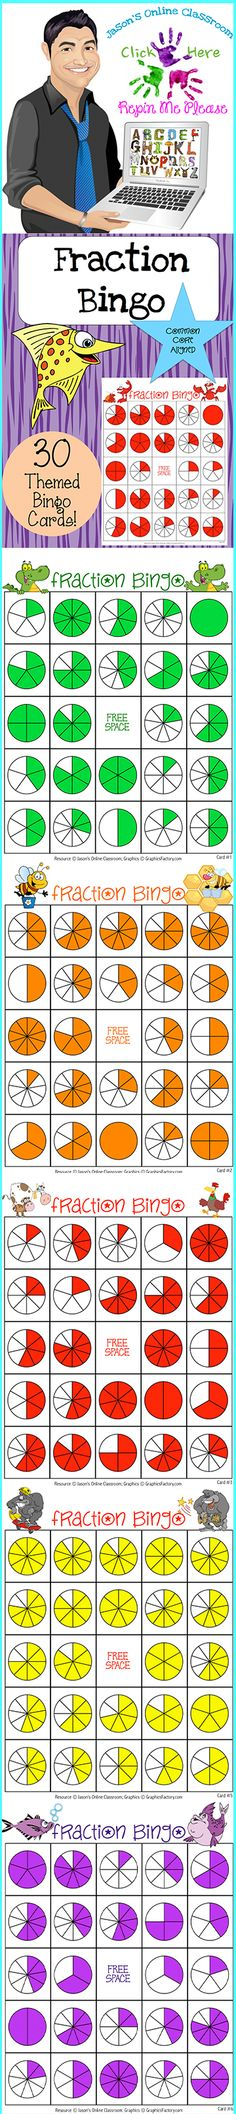 $5 Fraction Bingo -   This packet contains 30 randomized and uniquely themed fraction bingo cards and 2 bingo calling cards. There are 24 fractions and 1 free space on each bingo card. Each card has random fractions from 1/1 to 10/10. We suggest that all pages are printed out and laminated.  Use this one resource for years!  Click on the link below for more info about the images used to make this resource (Images © Graphics Factory) http://jasonsonlineclassroom.com./graphics-factory/